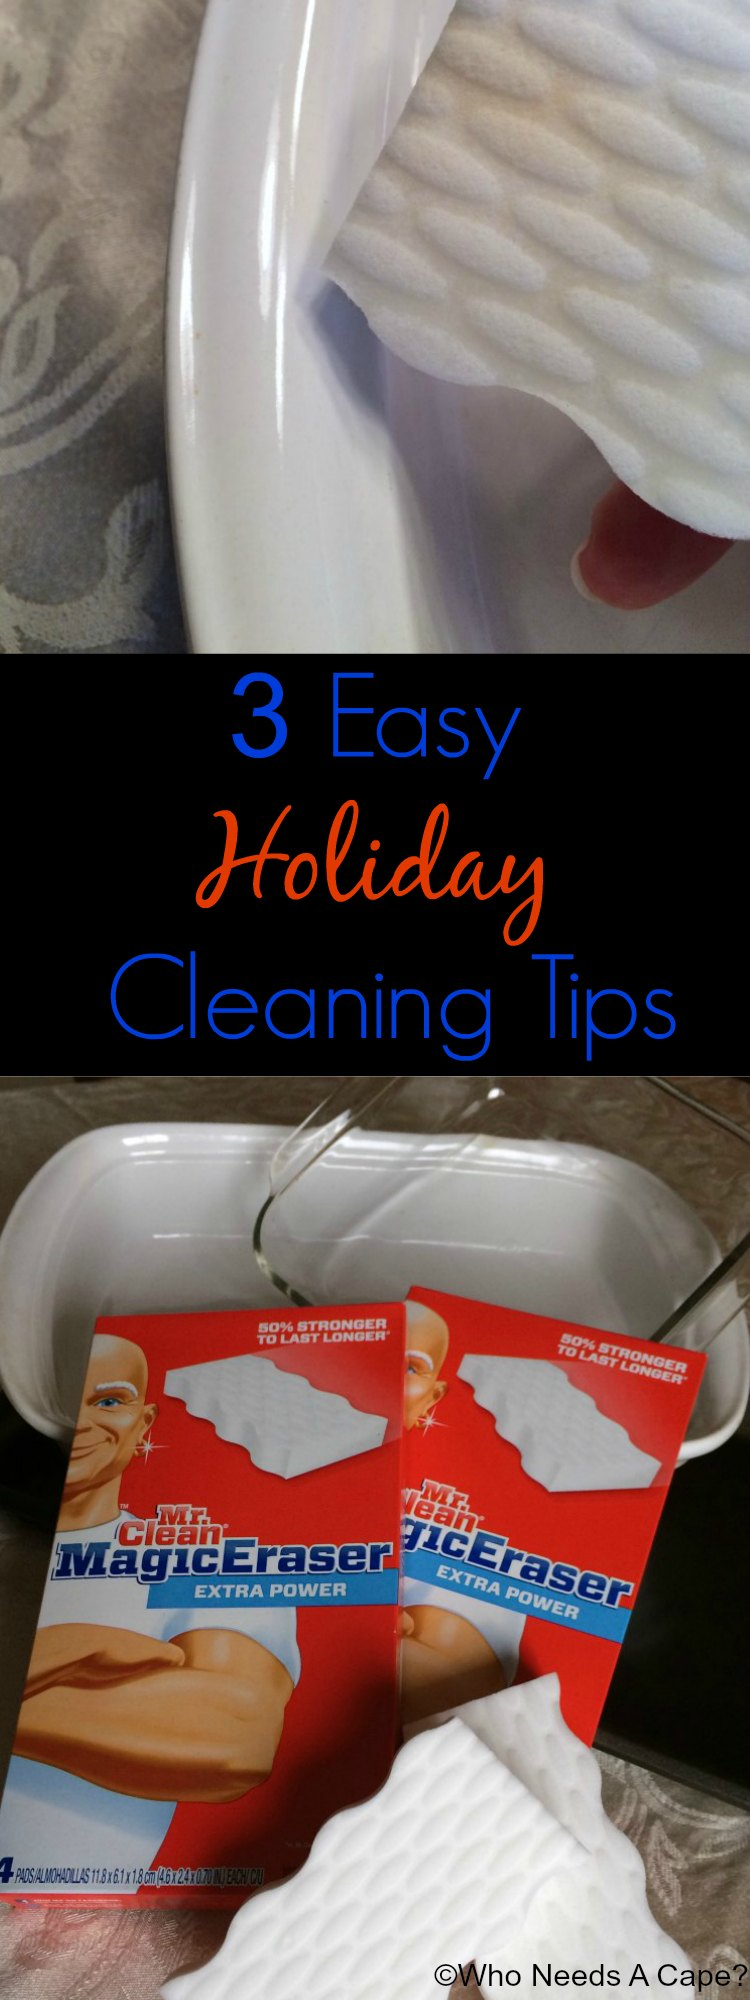 3 Easy Holiday Cleaning Tips | Who Needs A Cape? #MrCleanMillion